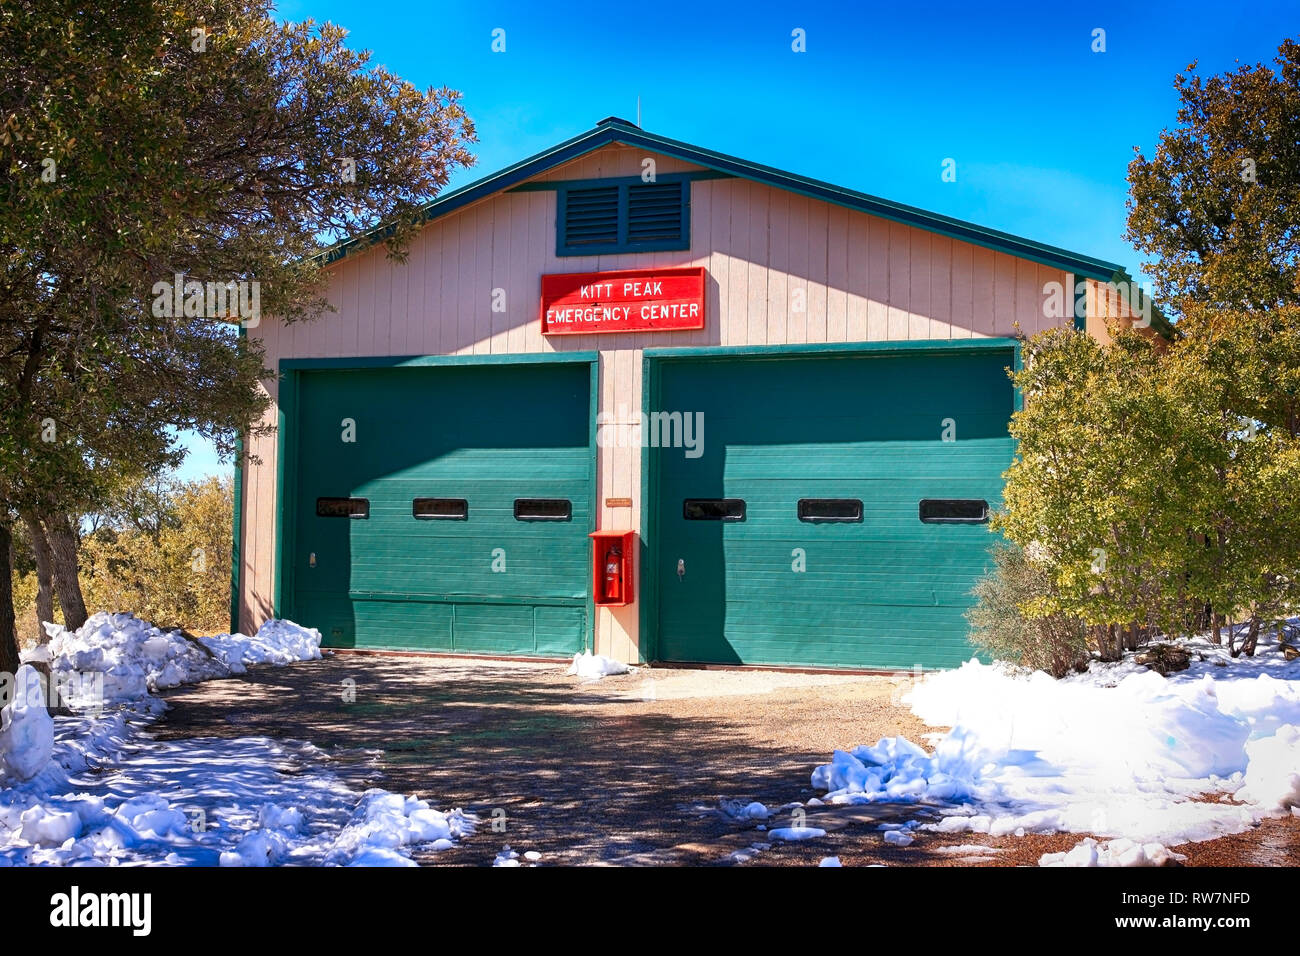 Kitt Peak National Observatory Emergency Center building, one of the highest Fire Stations in the World, the USA and Arizona - Stock Image